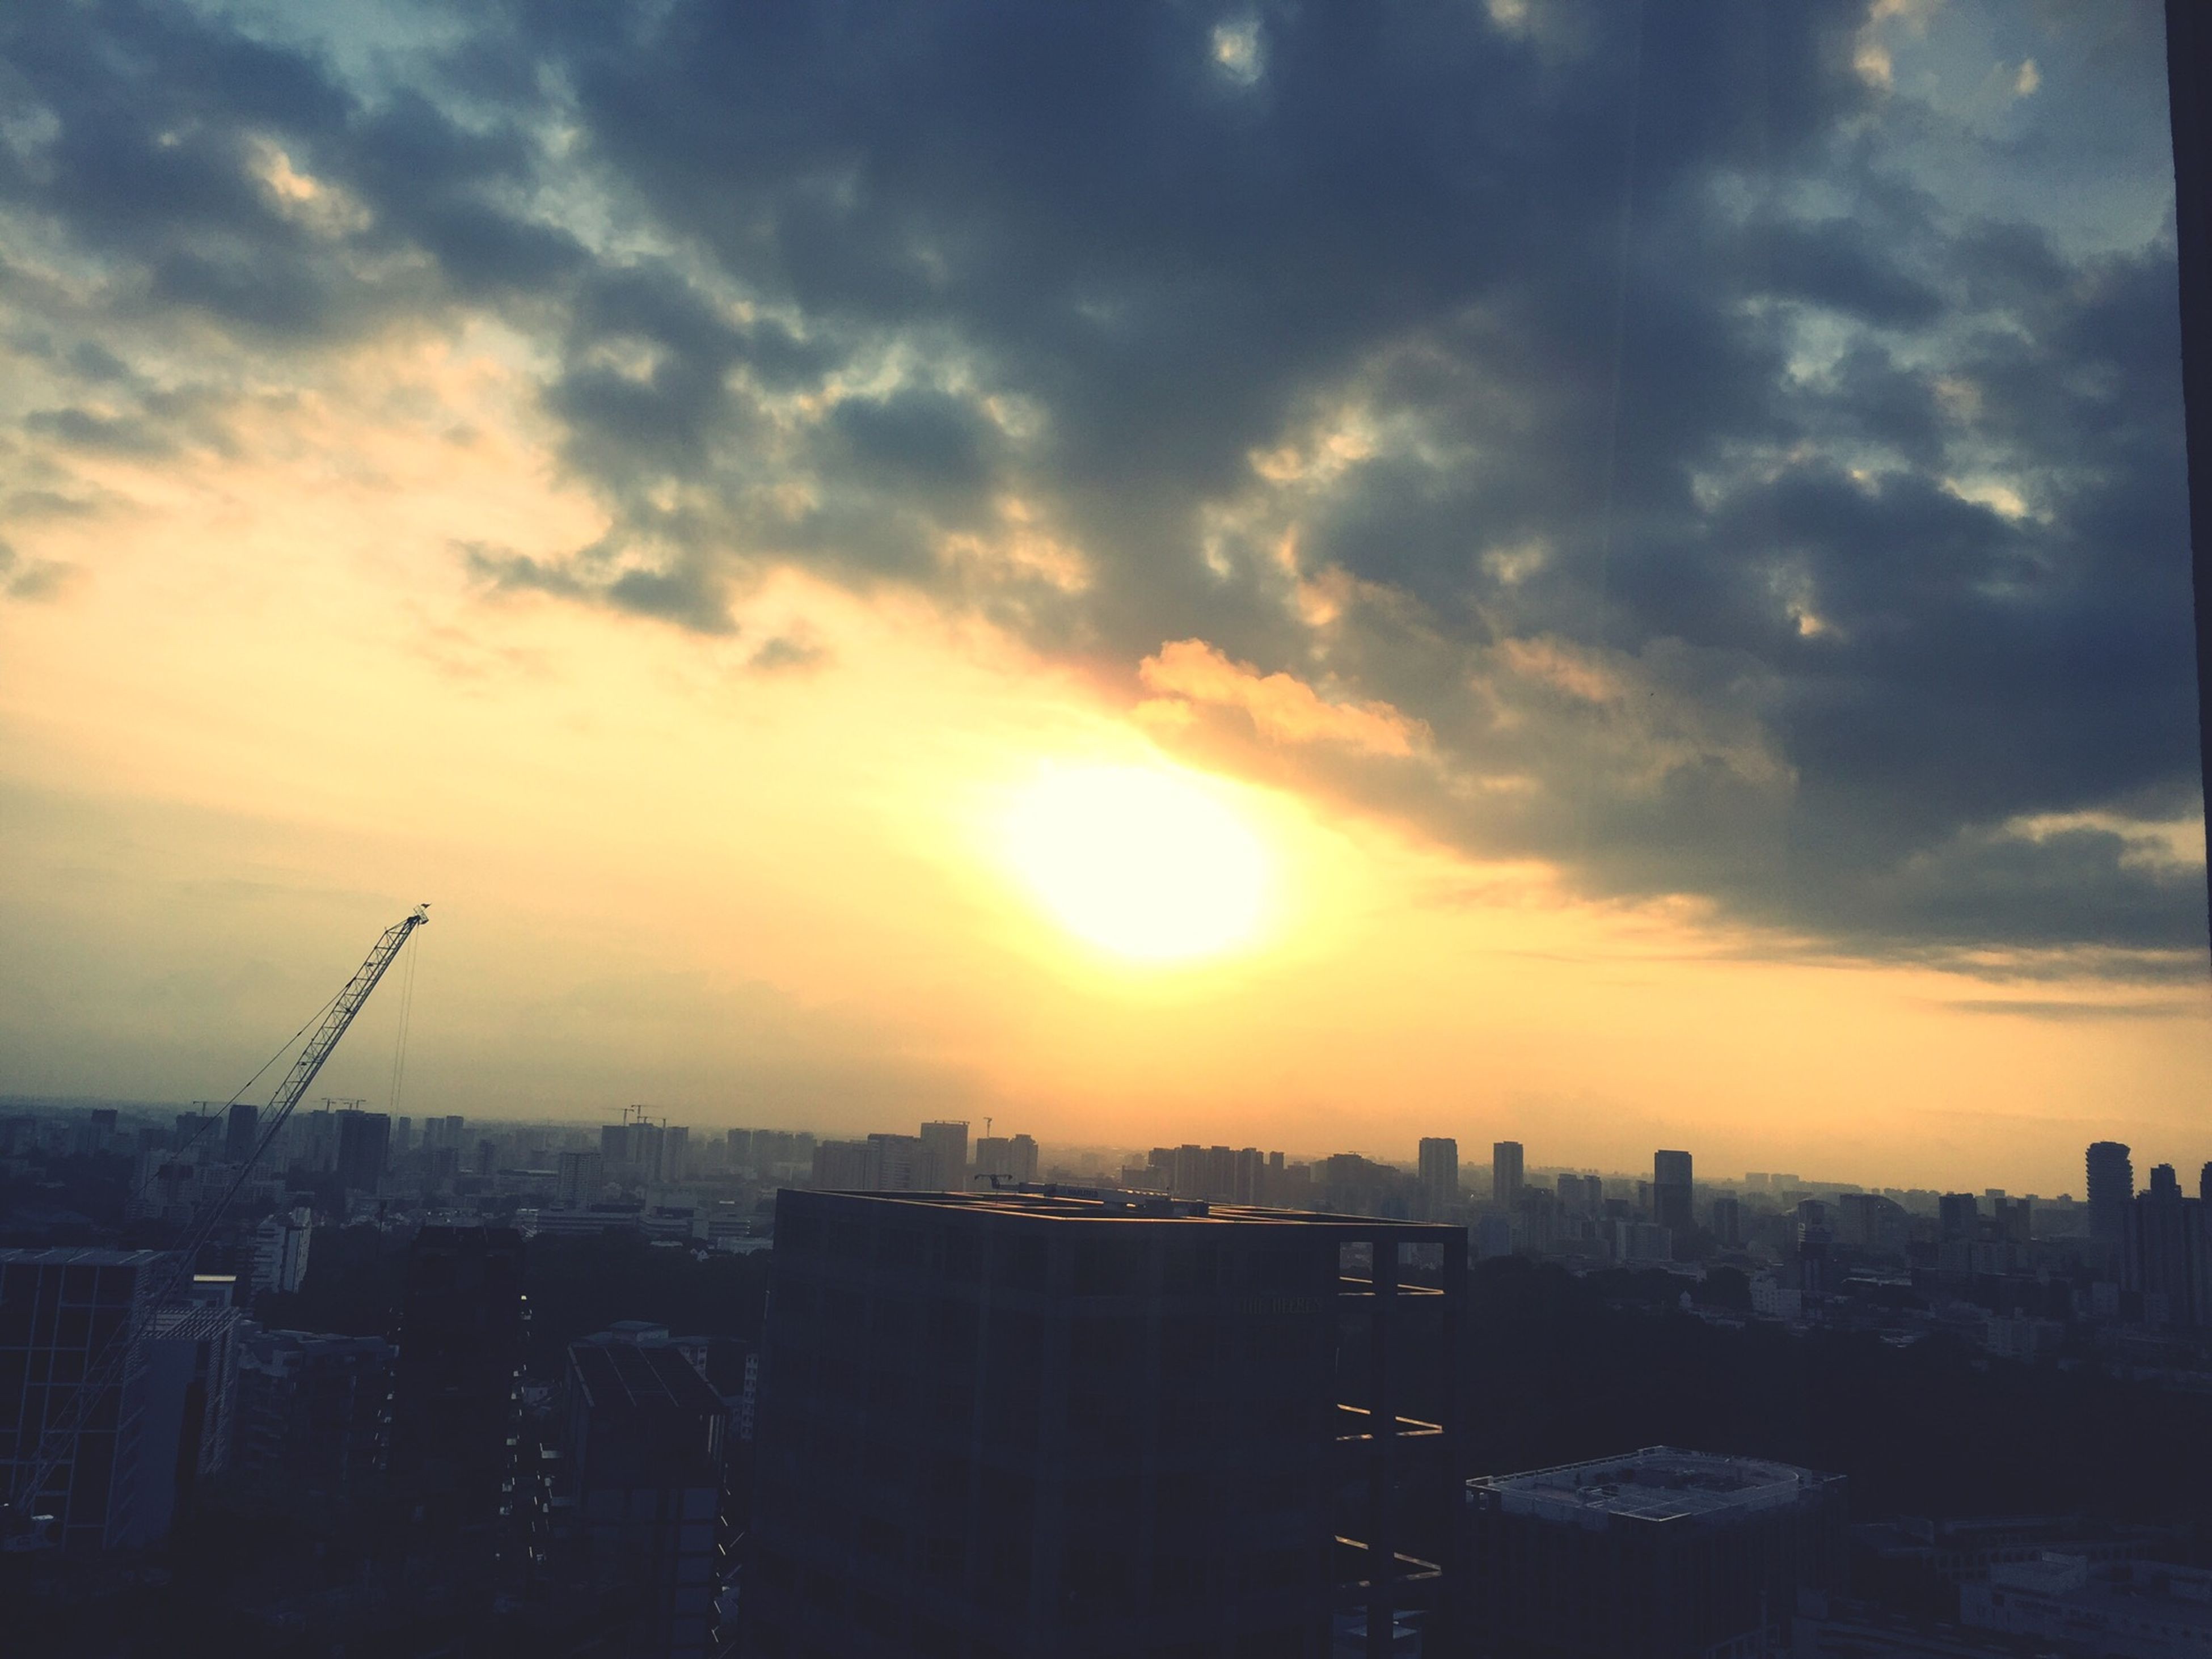 sunset, building exterior, city, cityscape, architecture, built structure, sky, cloud - sky, skyscraper, sun, orange color, crowded, tower, tall - high, residential district, residential building, urban skyline, sunlight, silhouette, city life